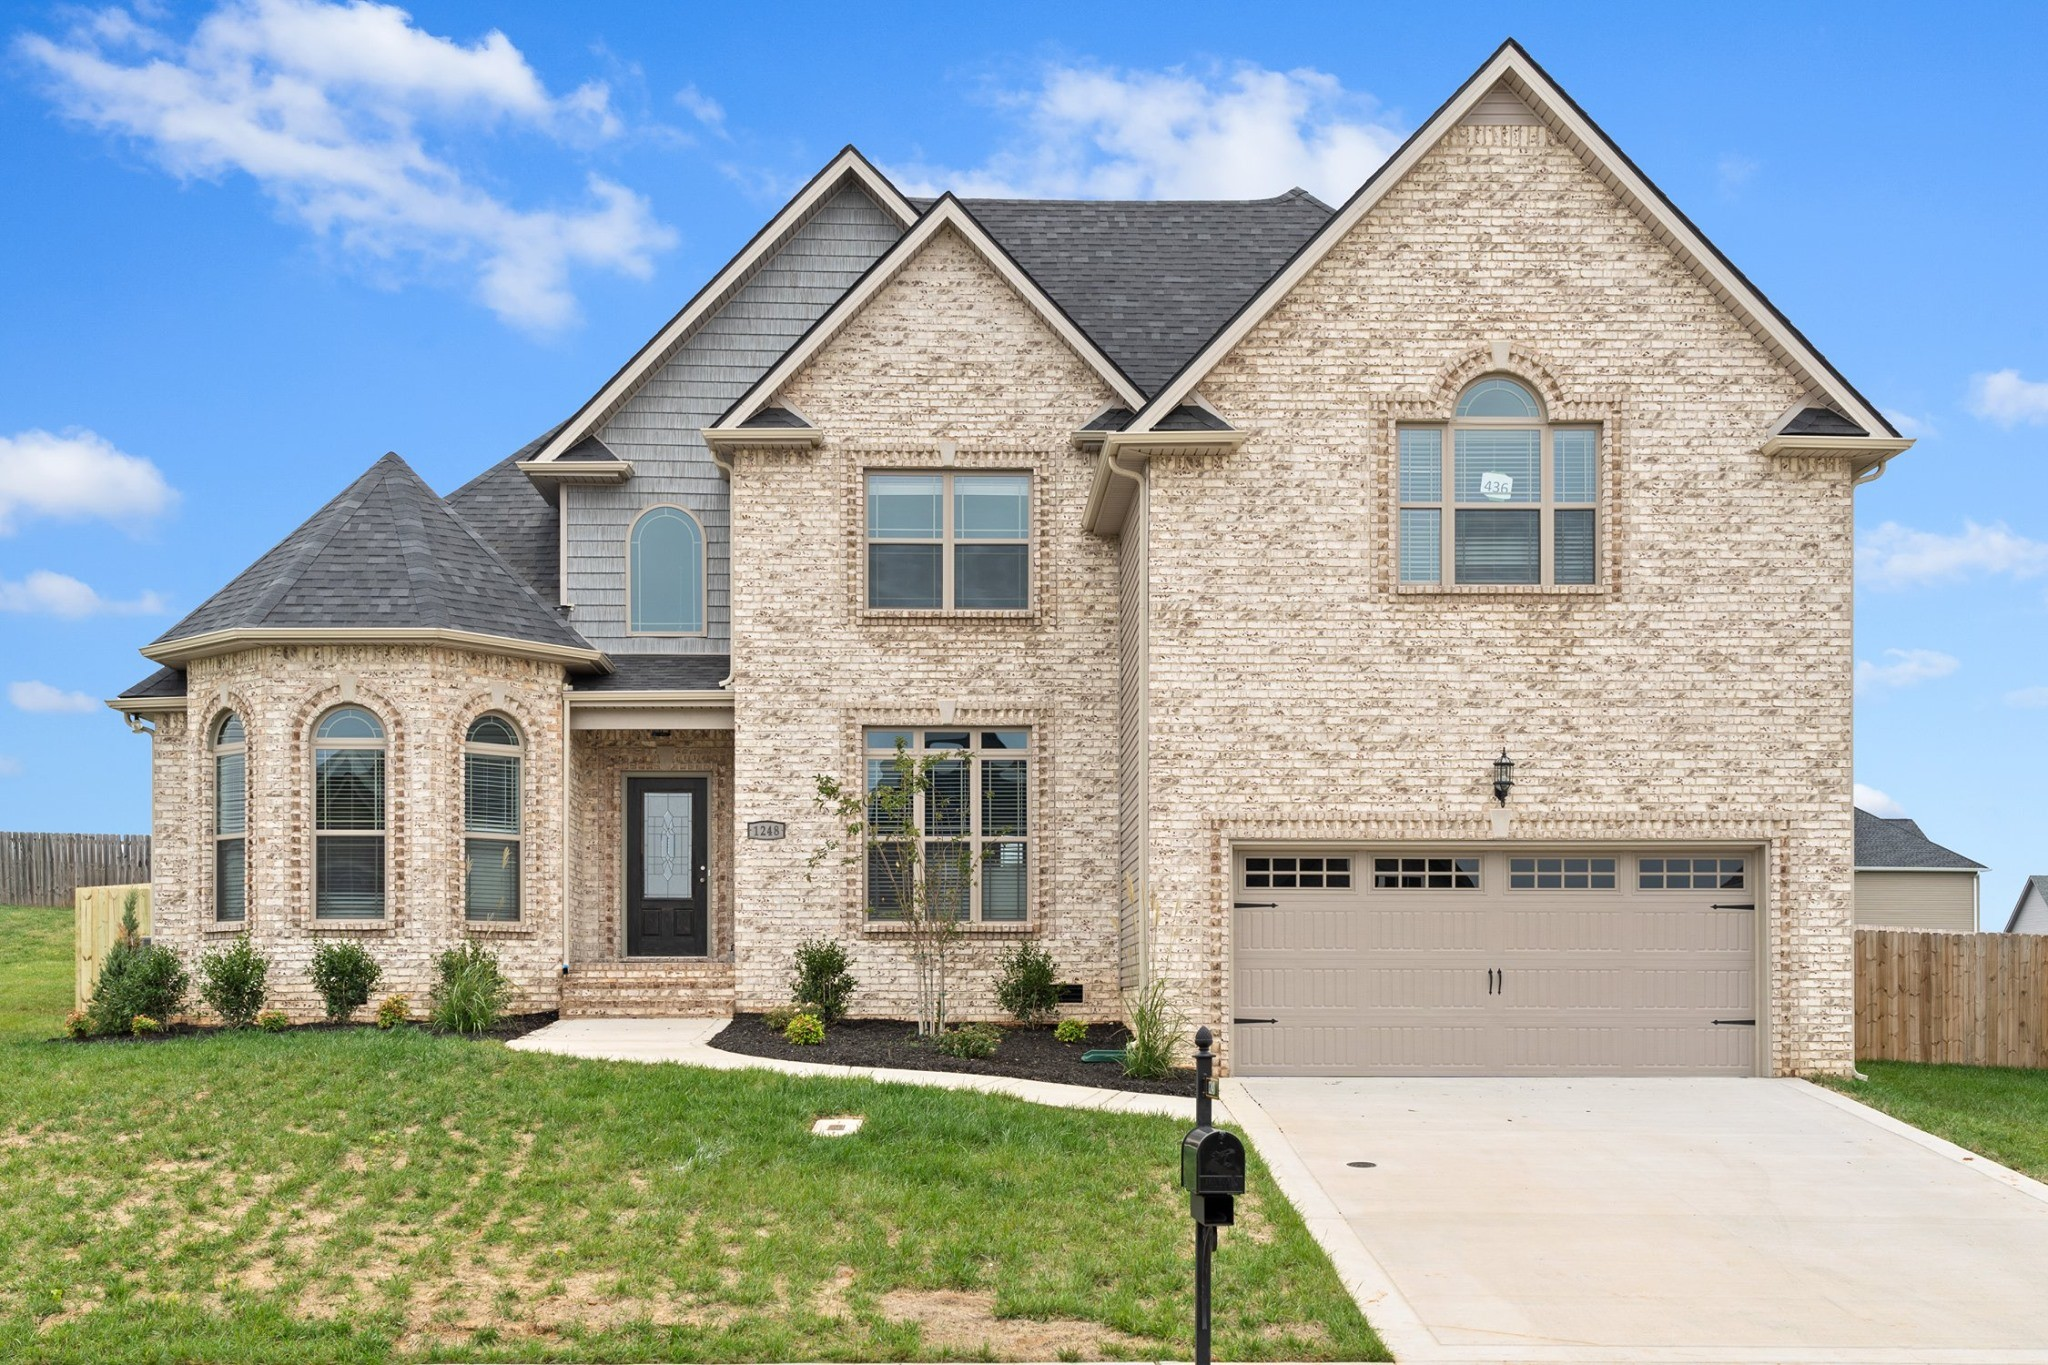 1341 Apple Blossom Rd Lot 155 Property Photo - Clarksville, TN real estate listing